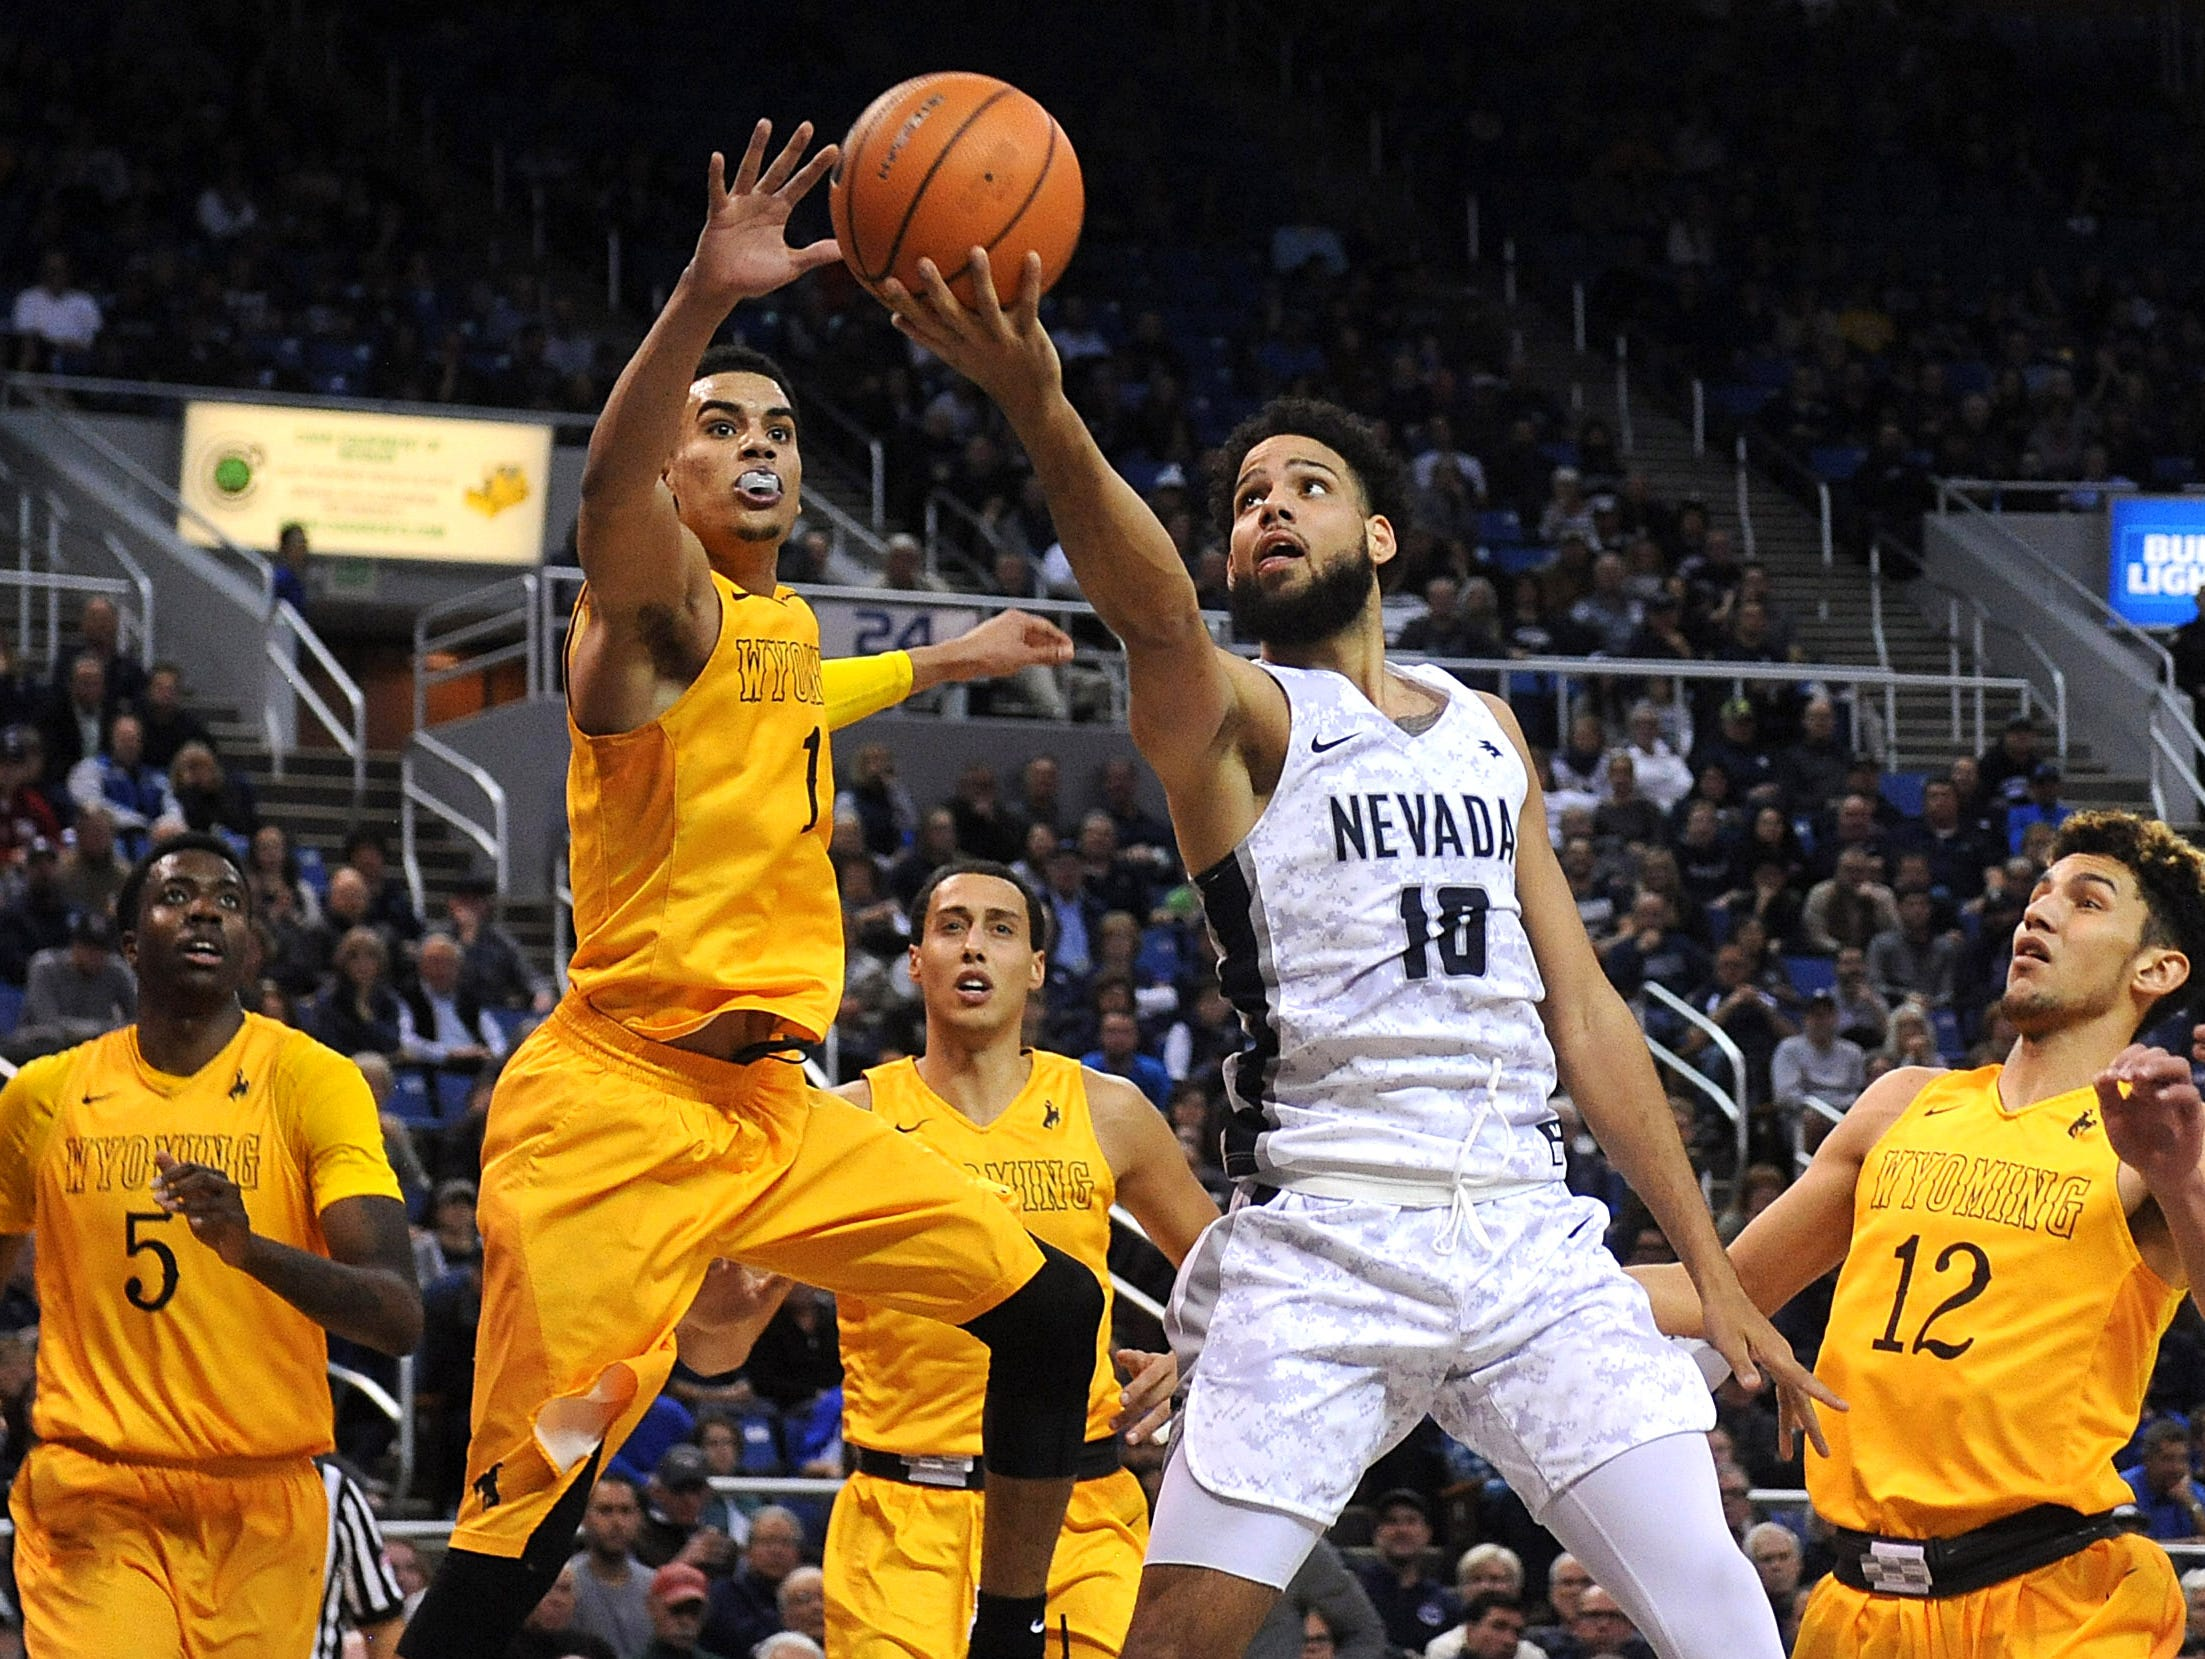 Nevada's Caleb Martin (10) drives to the basket while taking on Wyoming during their basketball game at Lawlor Events Center in Reno on Jan. 3, 2018.